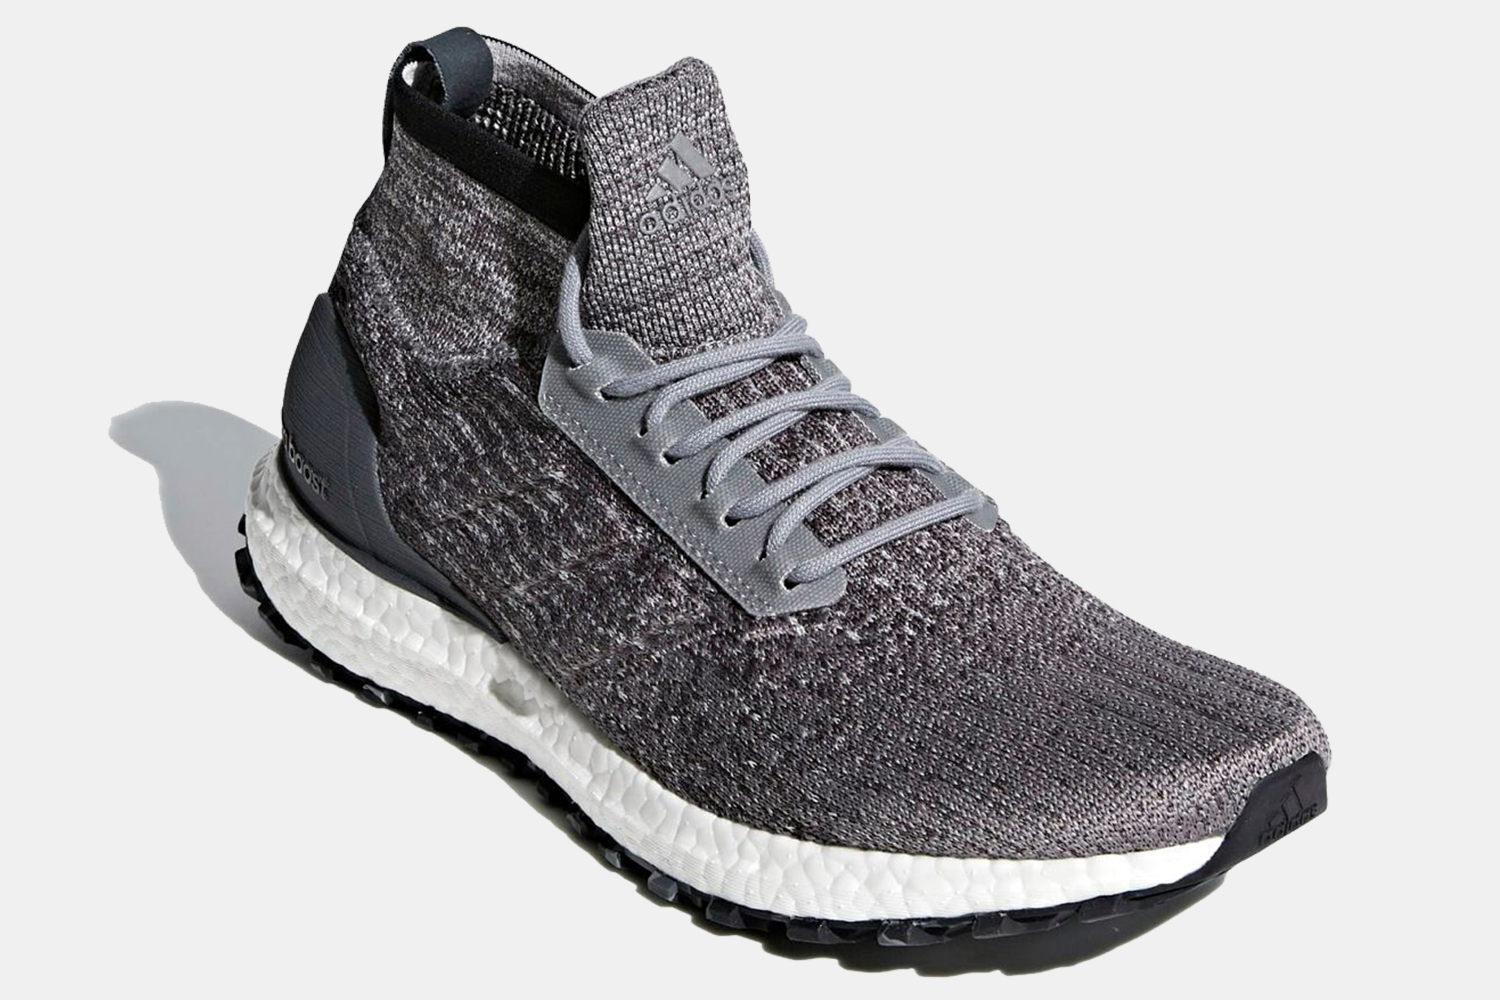 sports shoes 526ac 852a9 Take Up to 50% Off Ultraboosts, NMDs and Your Other Favorite ...